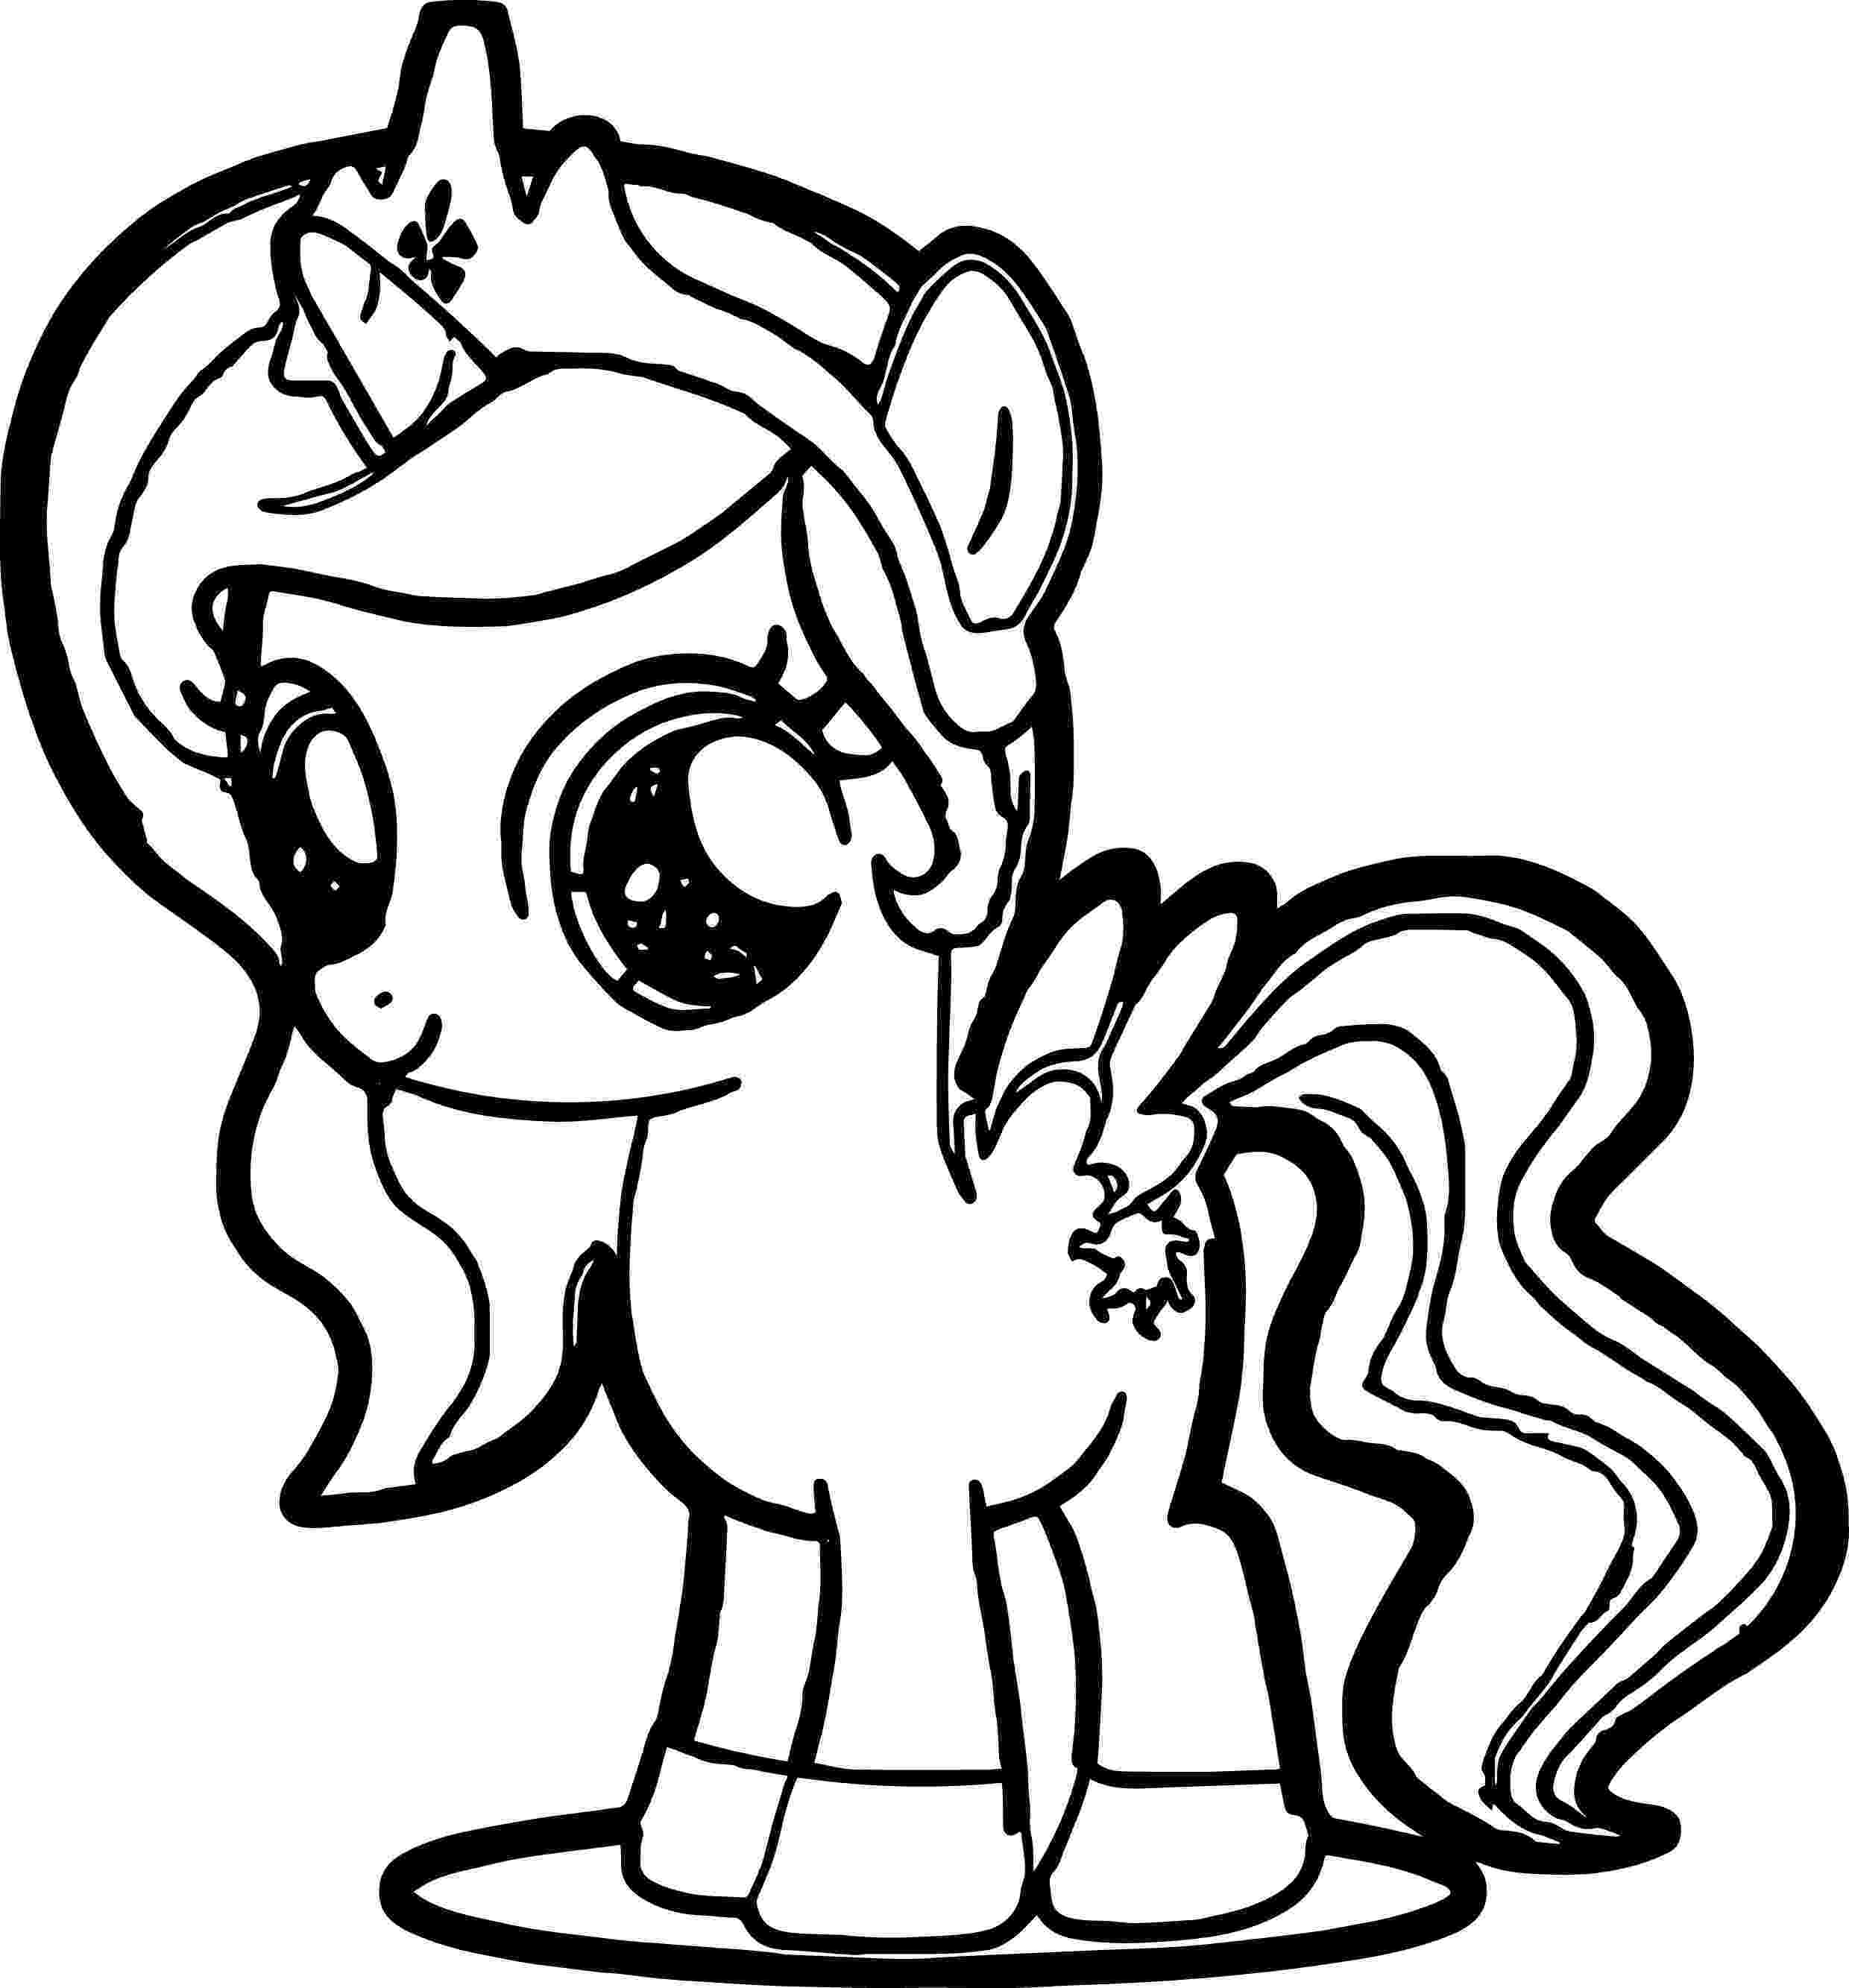 colouring pages pony pony coloring pages the sun flower pages colouring pony pages